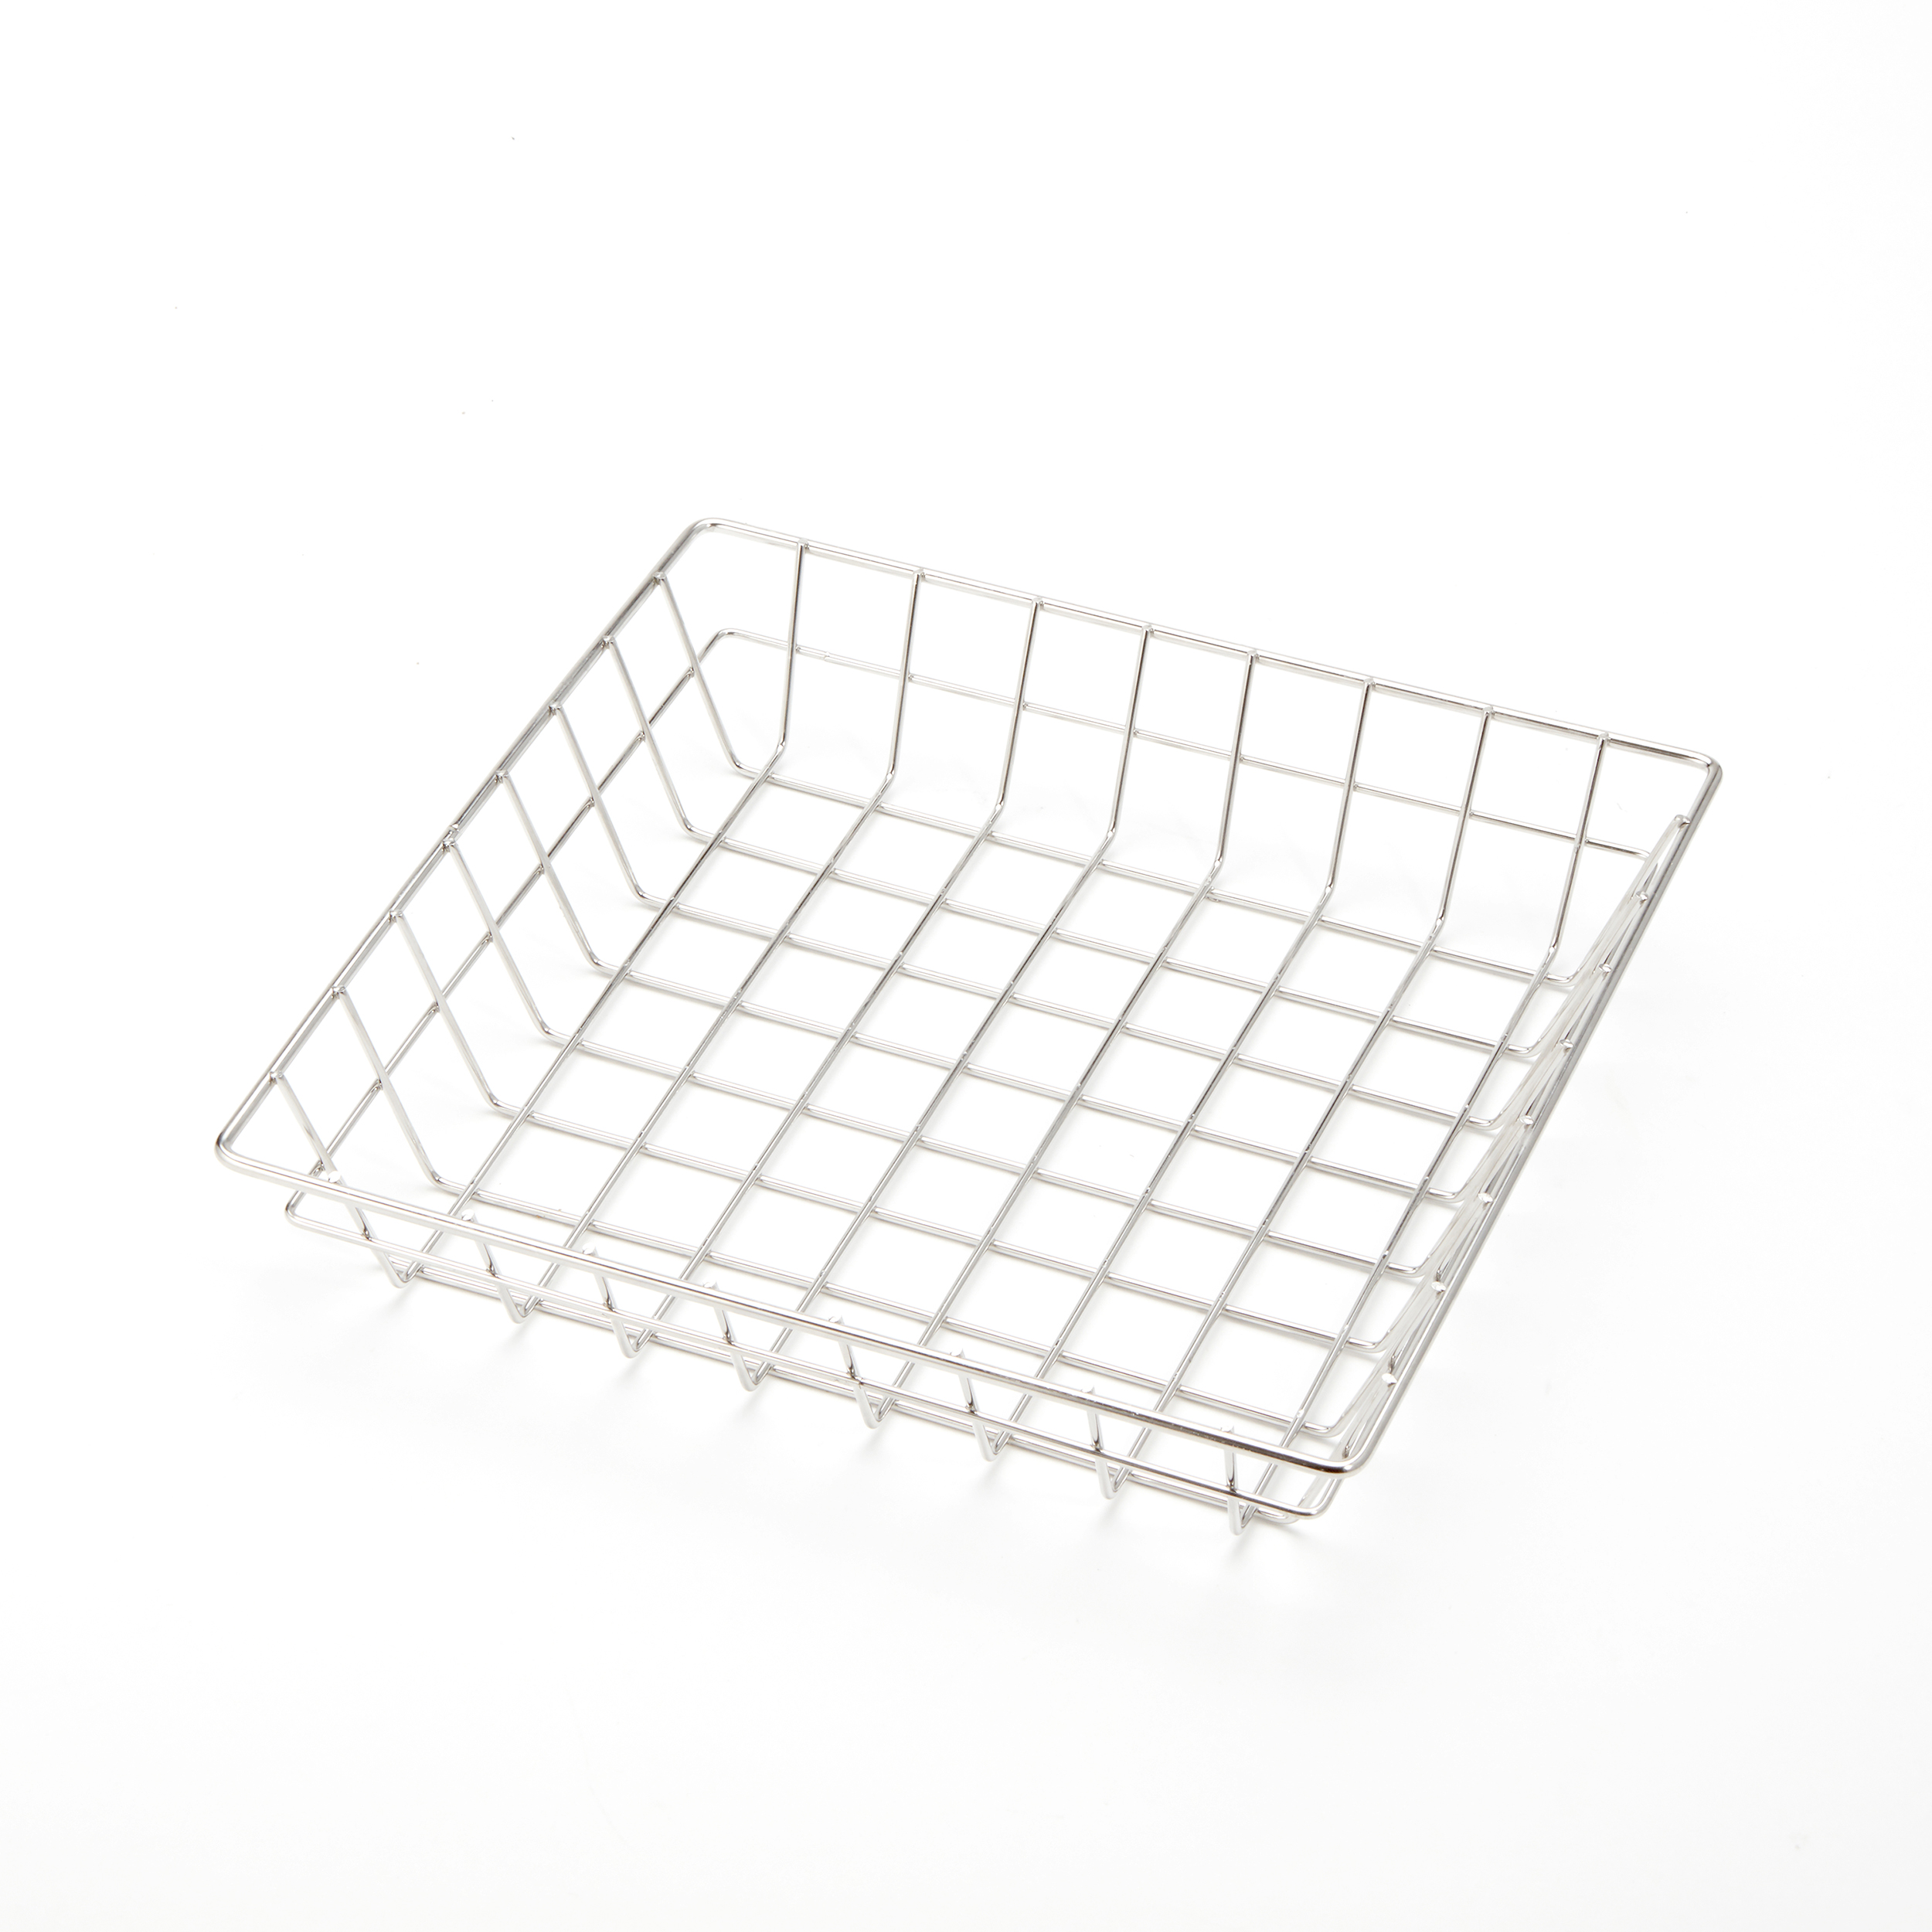 American Metalcraft SQGS10 basket, display, wire